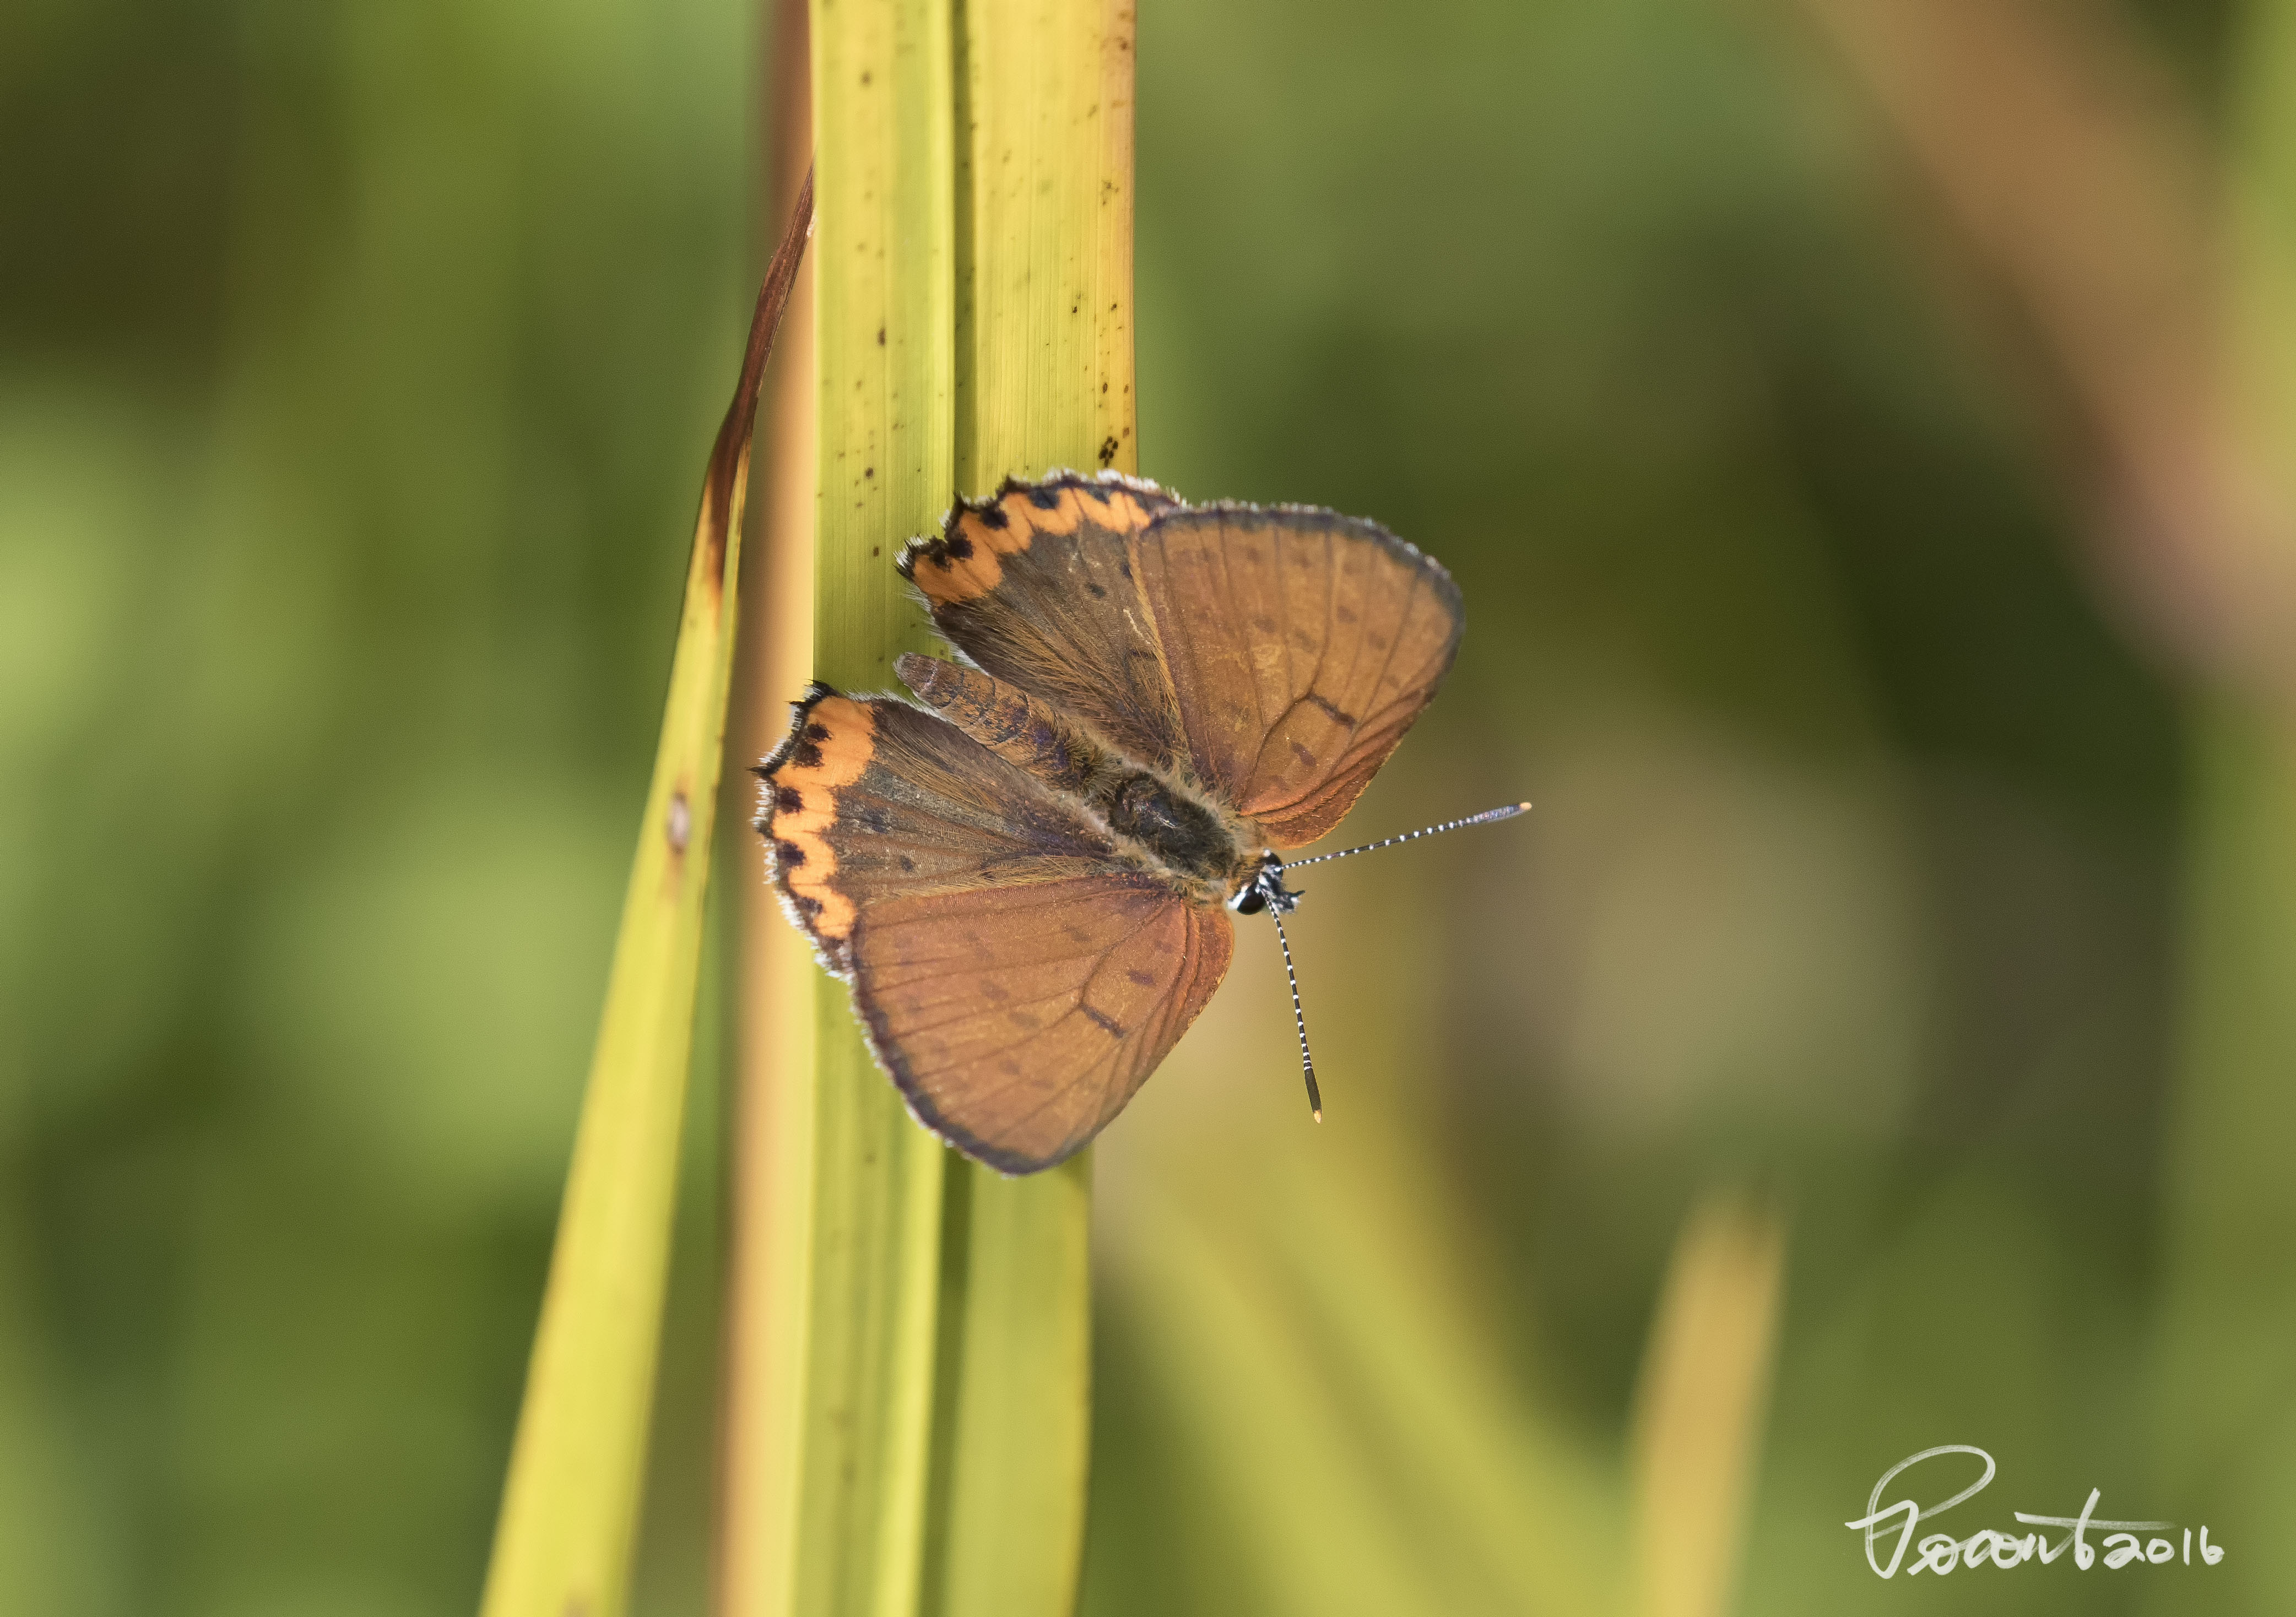 Poronto S Birding Macomb Township And Beyond Blog Best